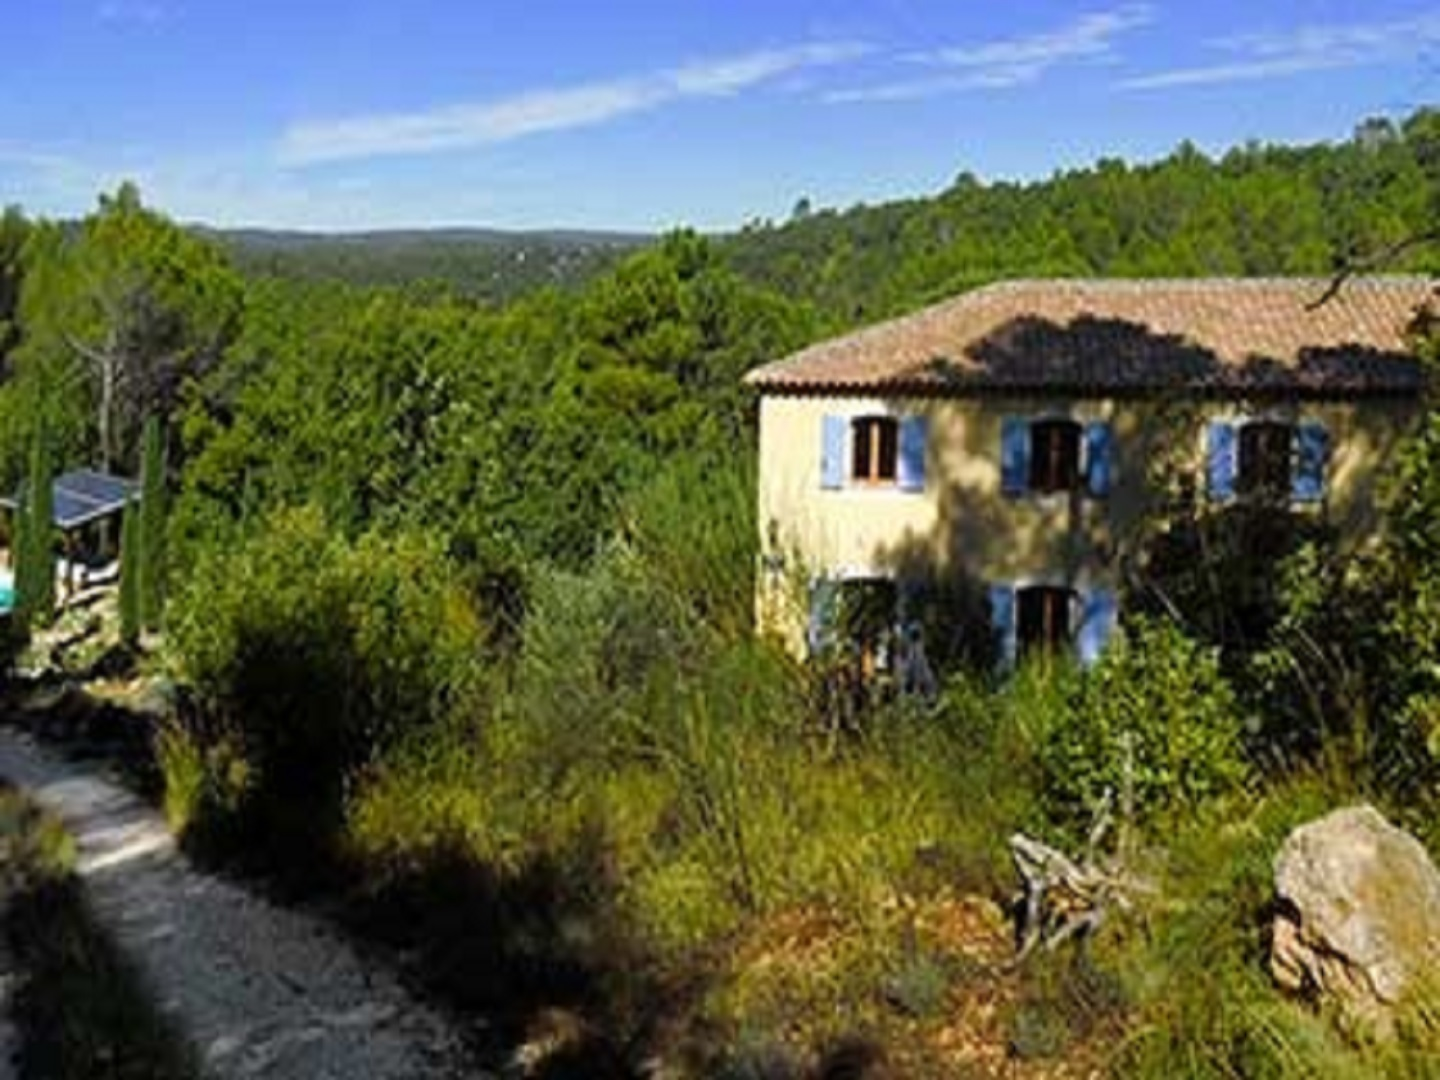 A house with trees in the background at La Bastide des Templiers en Provence .